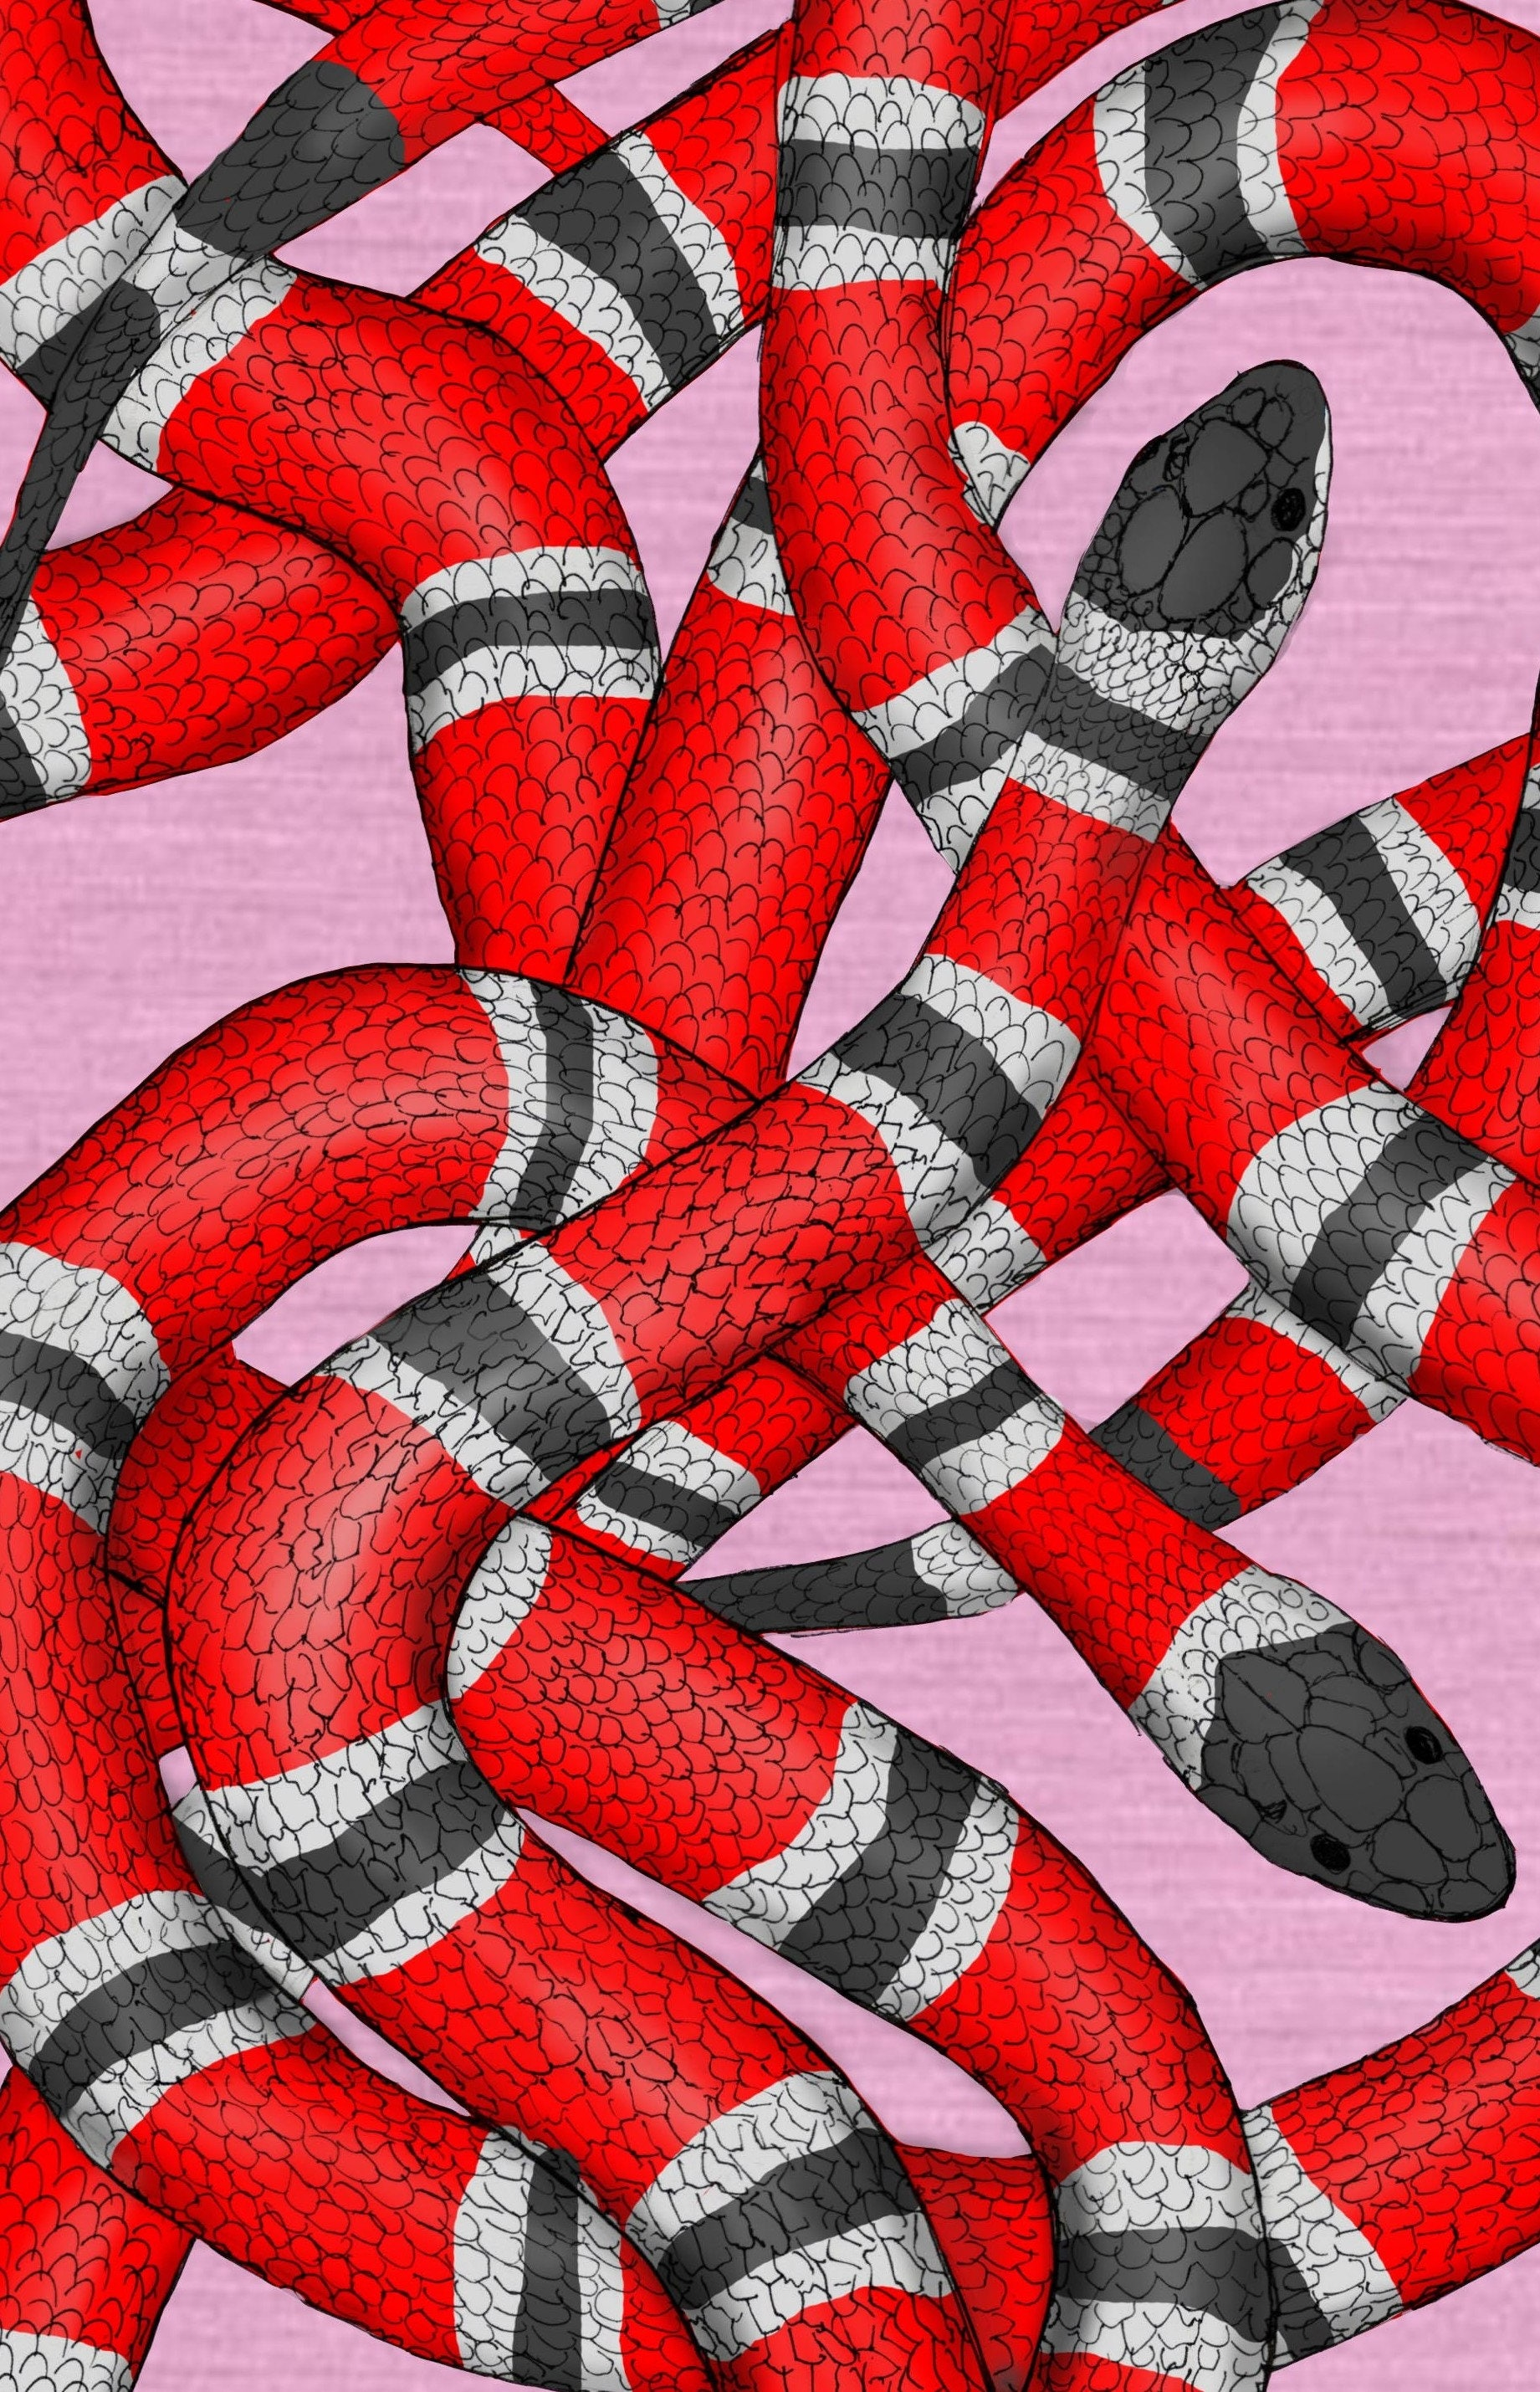 Red Snake Wallpaper Removable Gucci Wall Paper Snakes